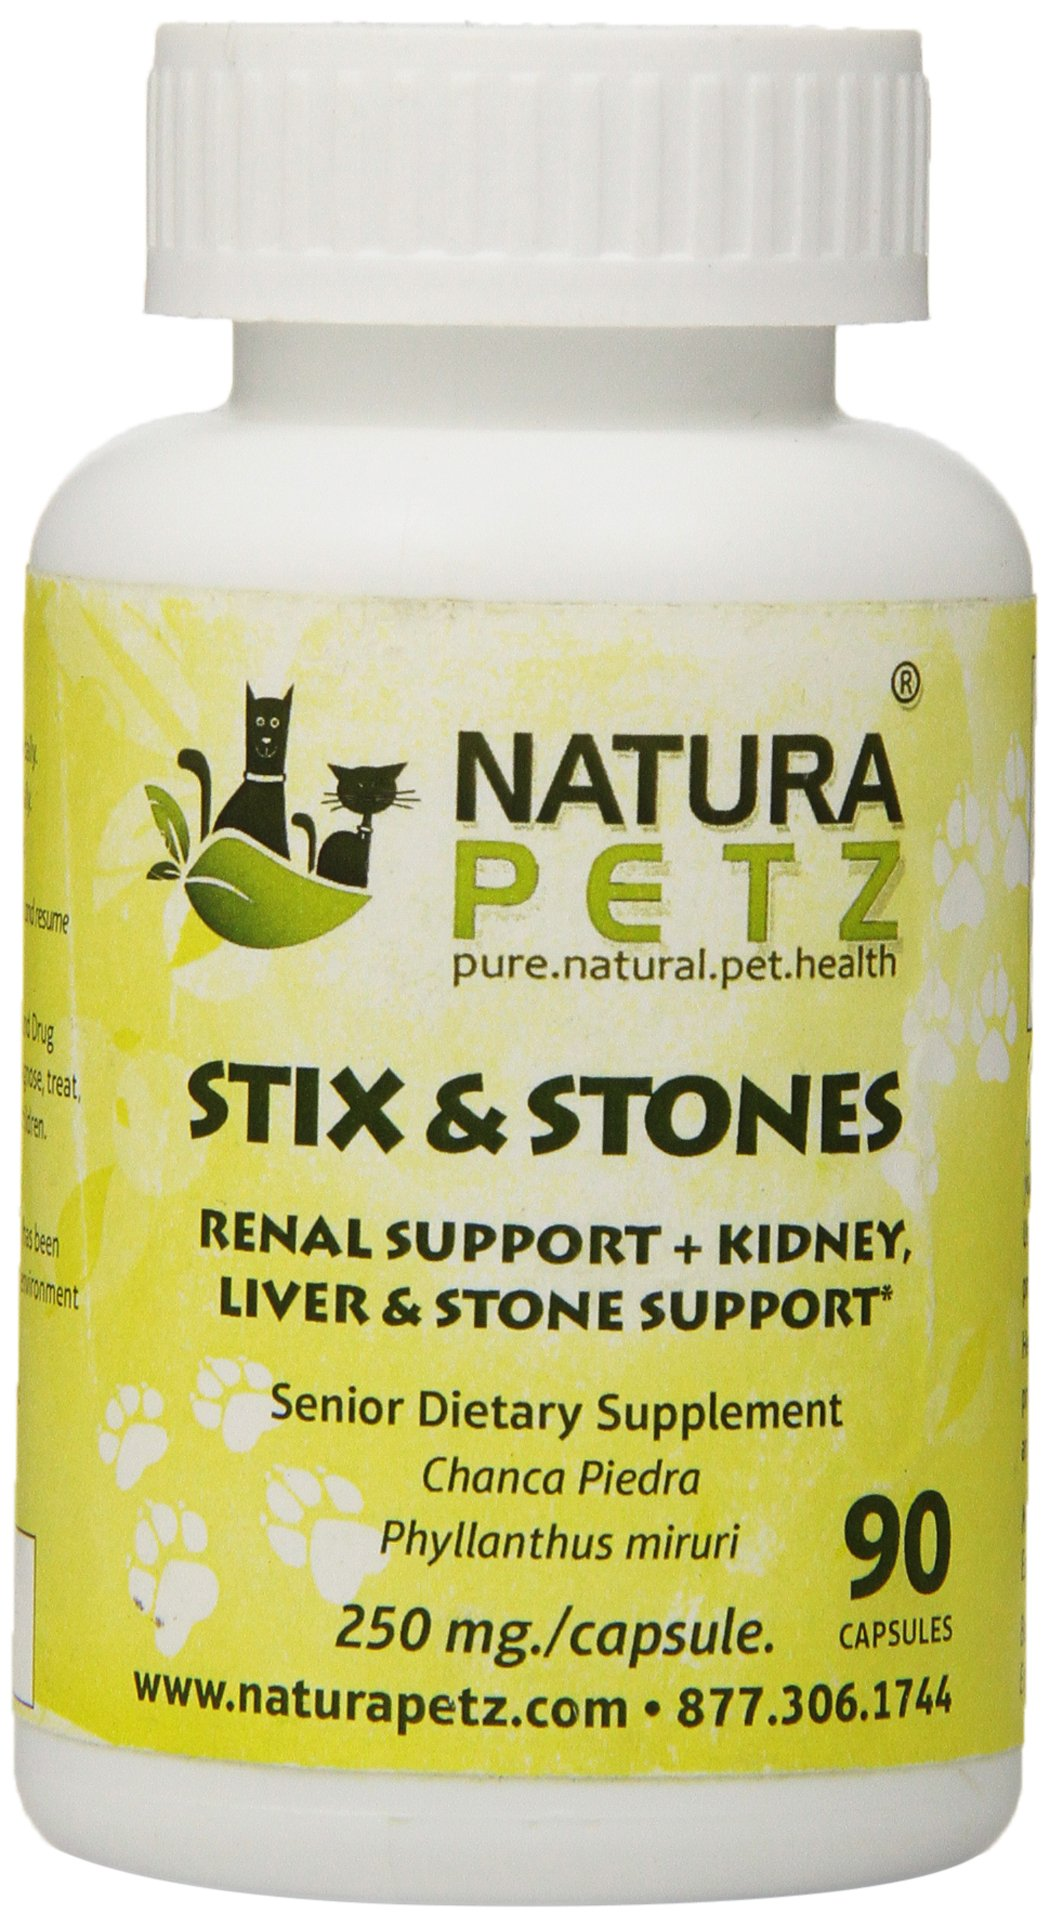 Natura Petz Stix and Stones Renal Support for Senior Pets, Kidney, Liver and Stone Support for Senior Pets, 90 Capsules, 250mg Per Capsule